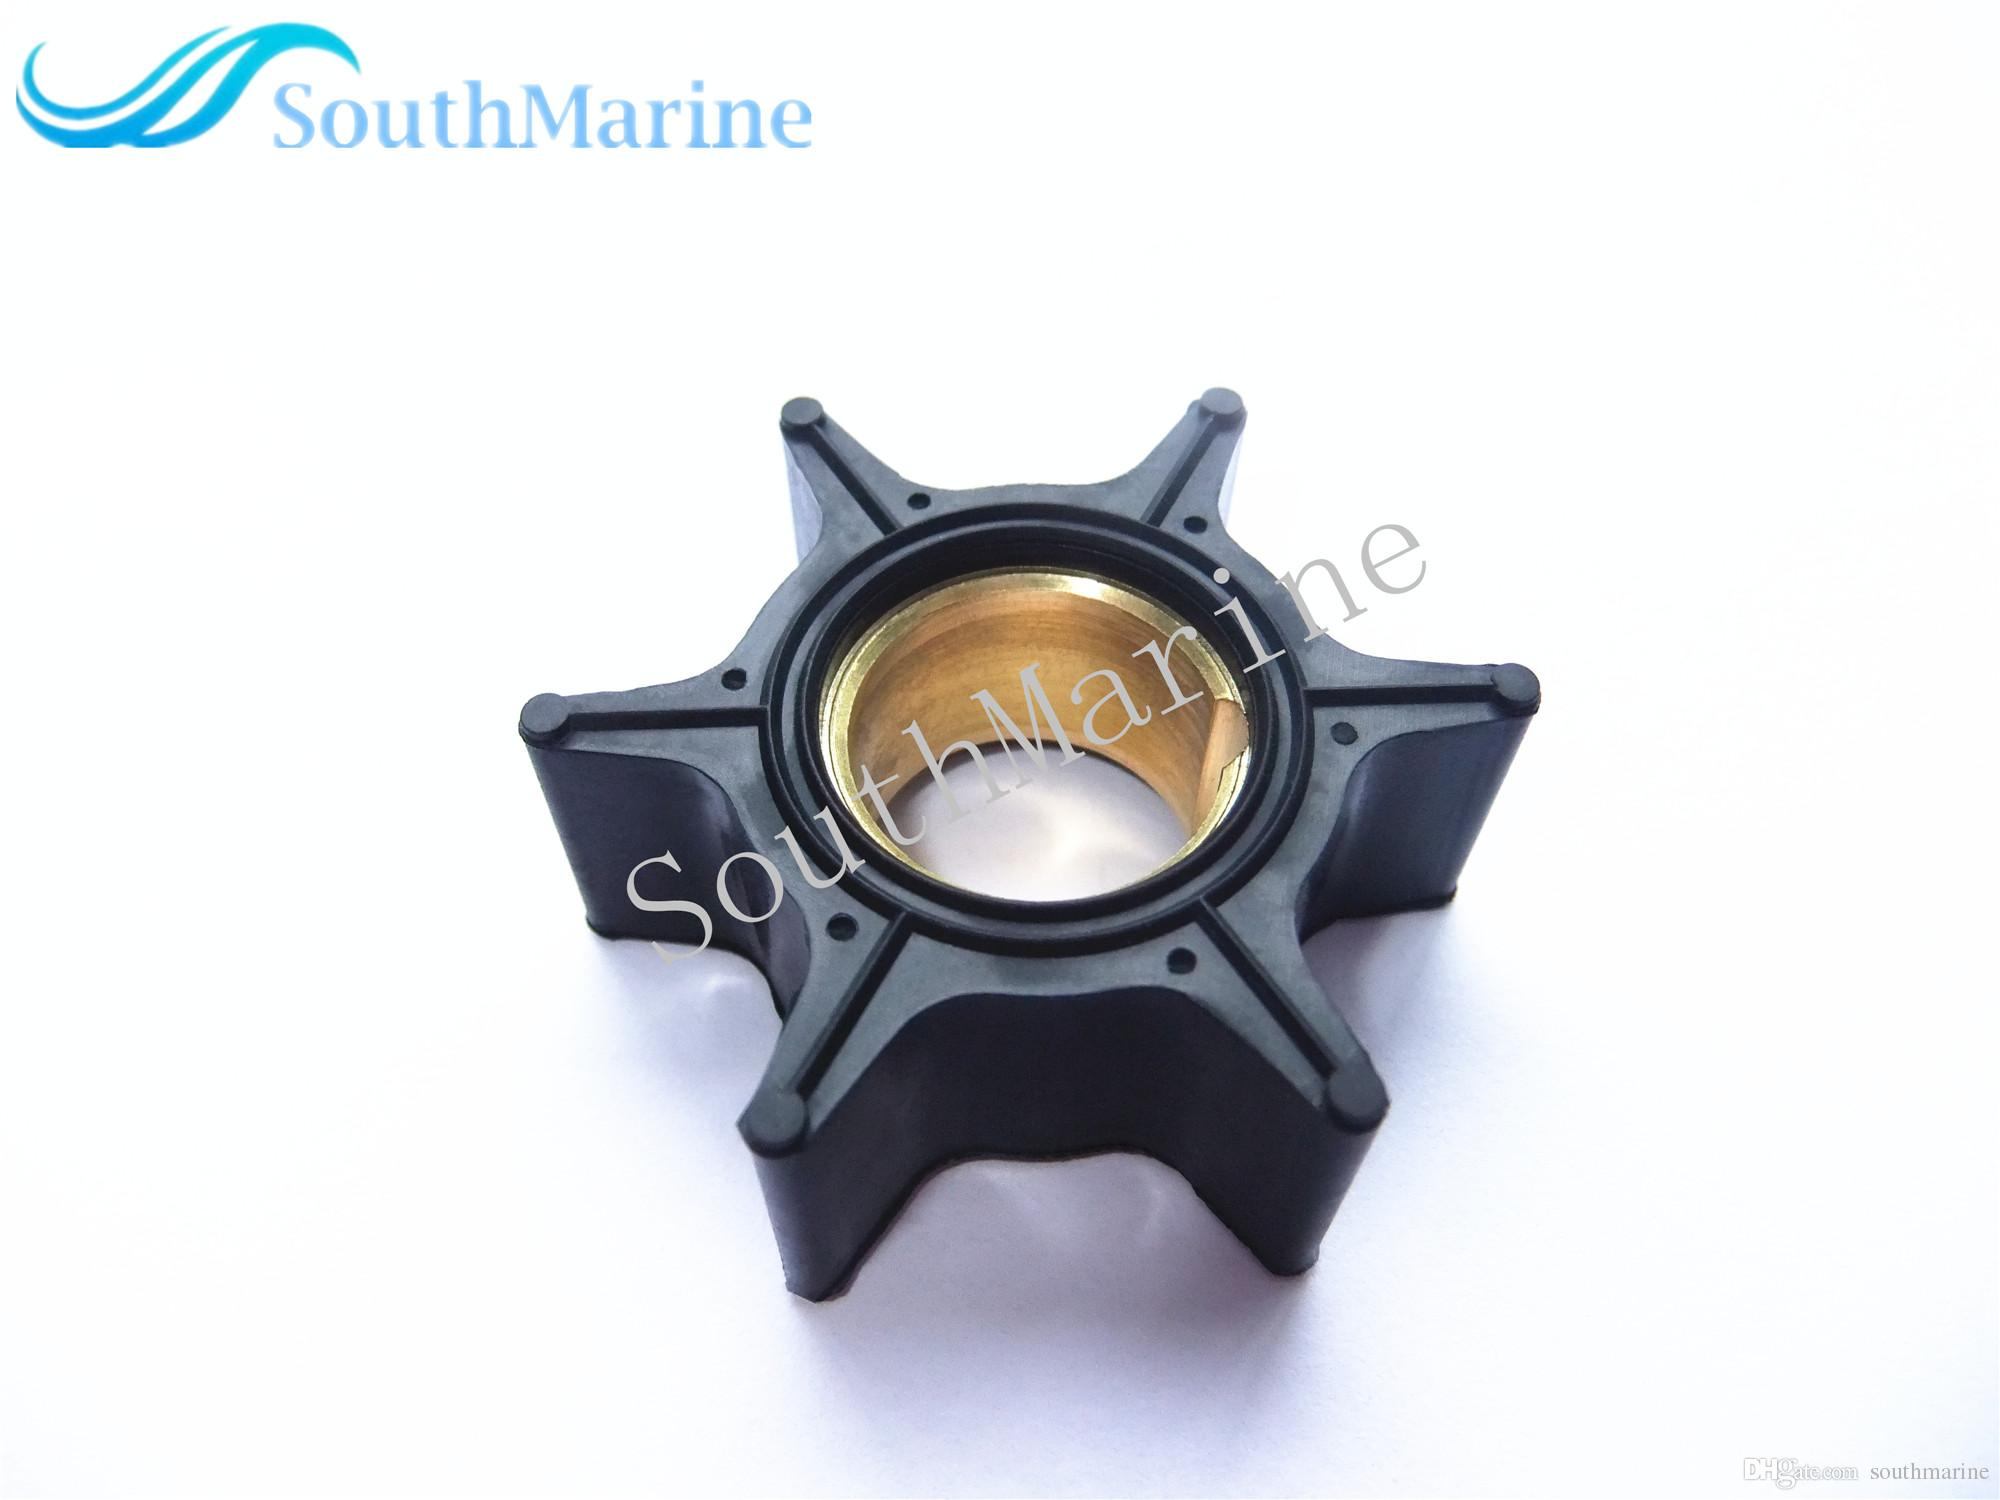 hight resolution of 2018 boat motor water pump impeller 17461 95200 17461 95201 for suzuki 2 stroke 35hp 40hp 50hp 60hp 65hp outboard engine from southmarine 10 28 dhgate